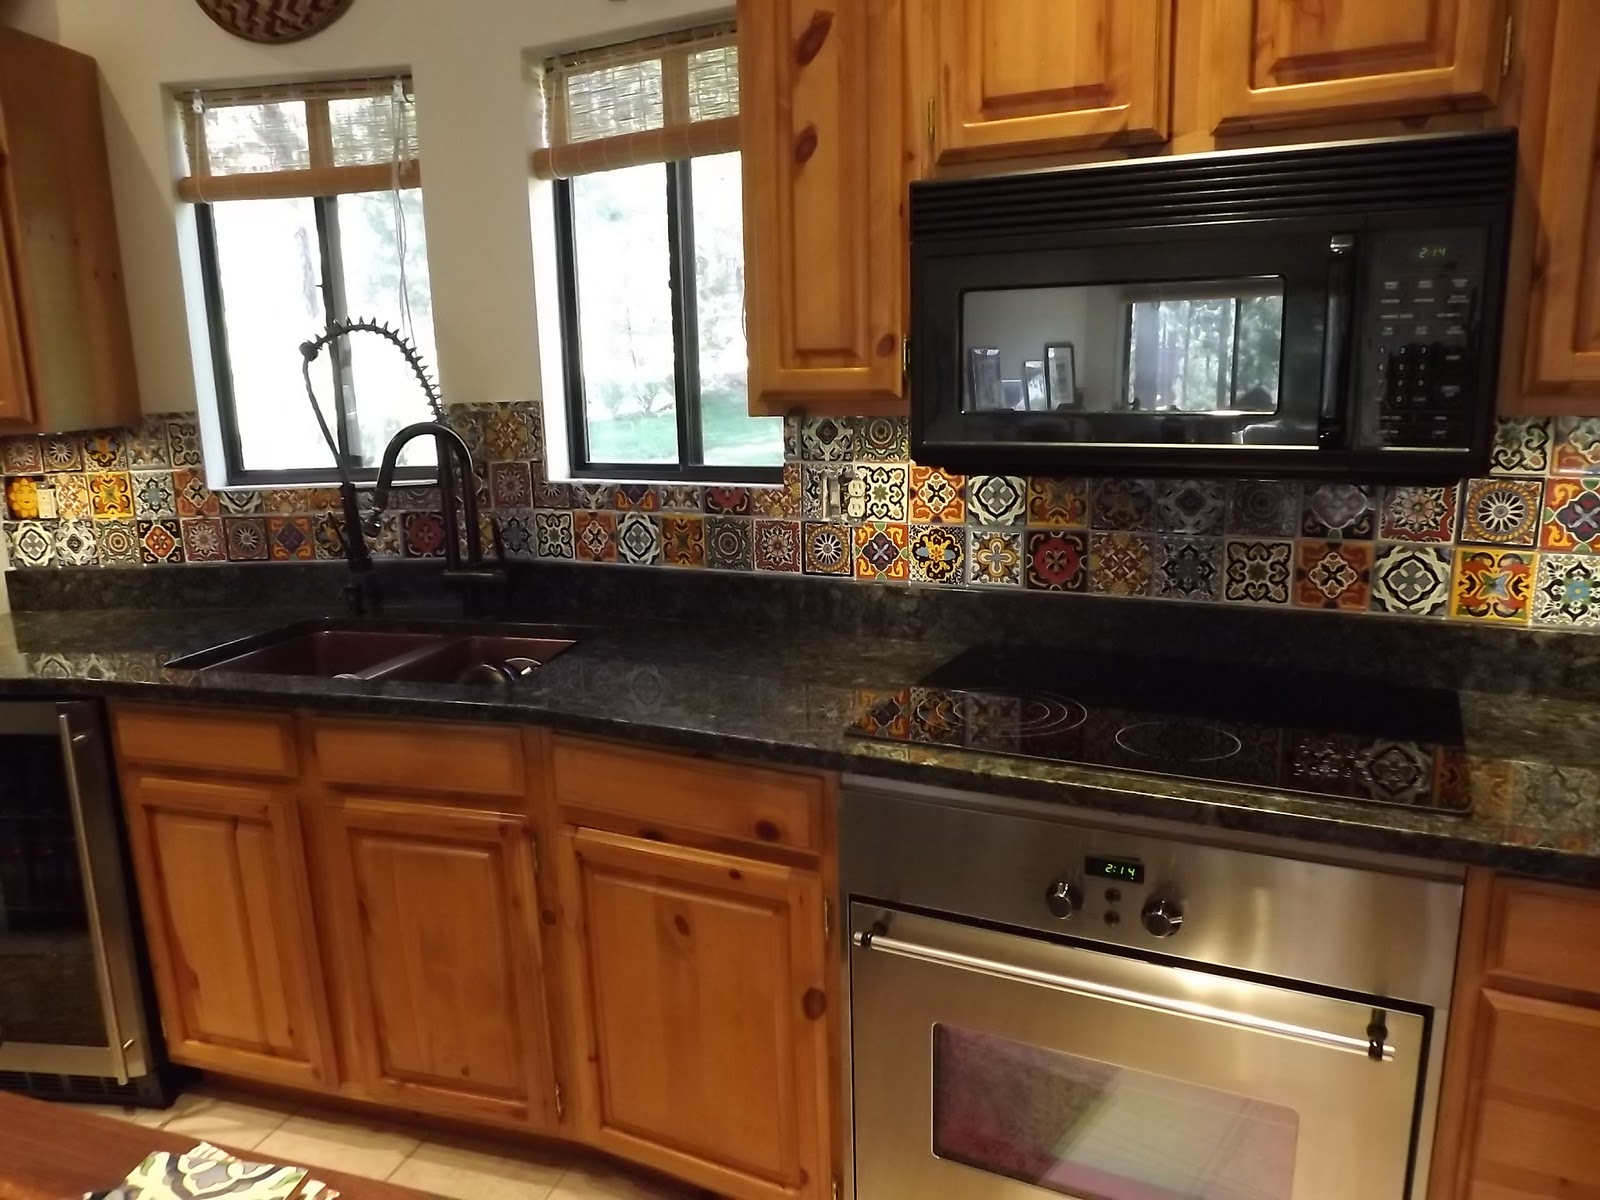 Spanish Tile Countertops Dusty Coyote Mexican Tile Kitchen Backsplash Diy